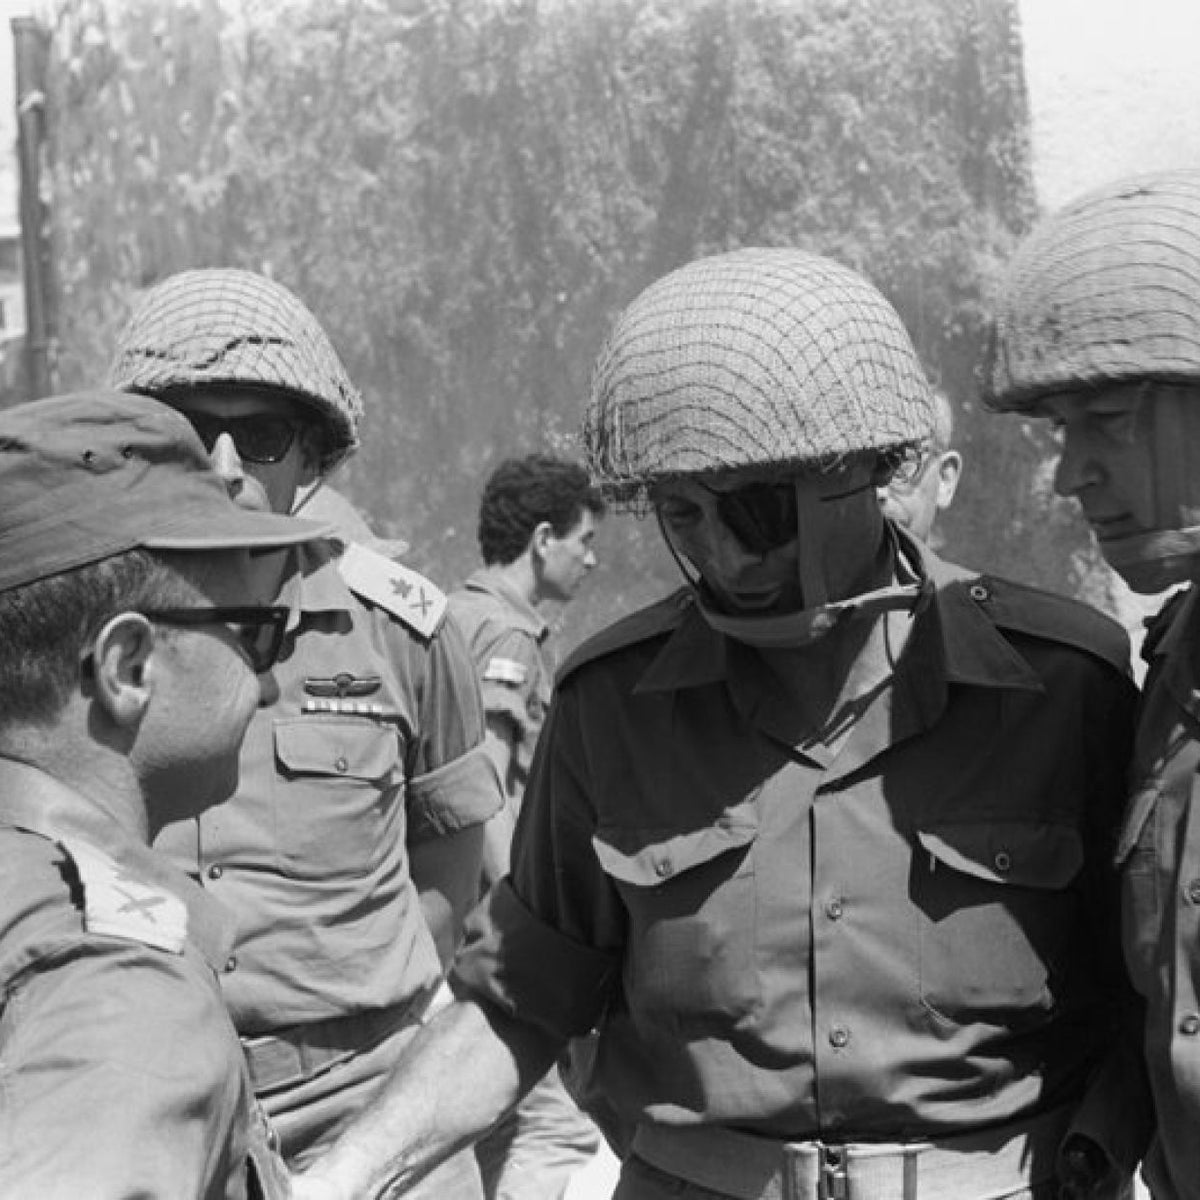 Four Israeli generals in the conquered Old City of Jerusalem on June 7, 1967: Uzi Narkiss, left, Rehavam Ze'evi, Moshe Dayan and Yitzhak Rabin.